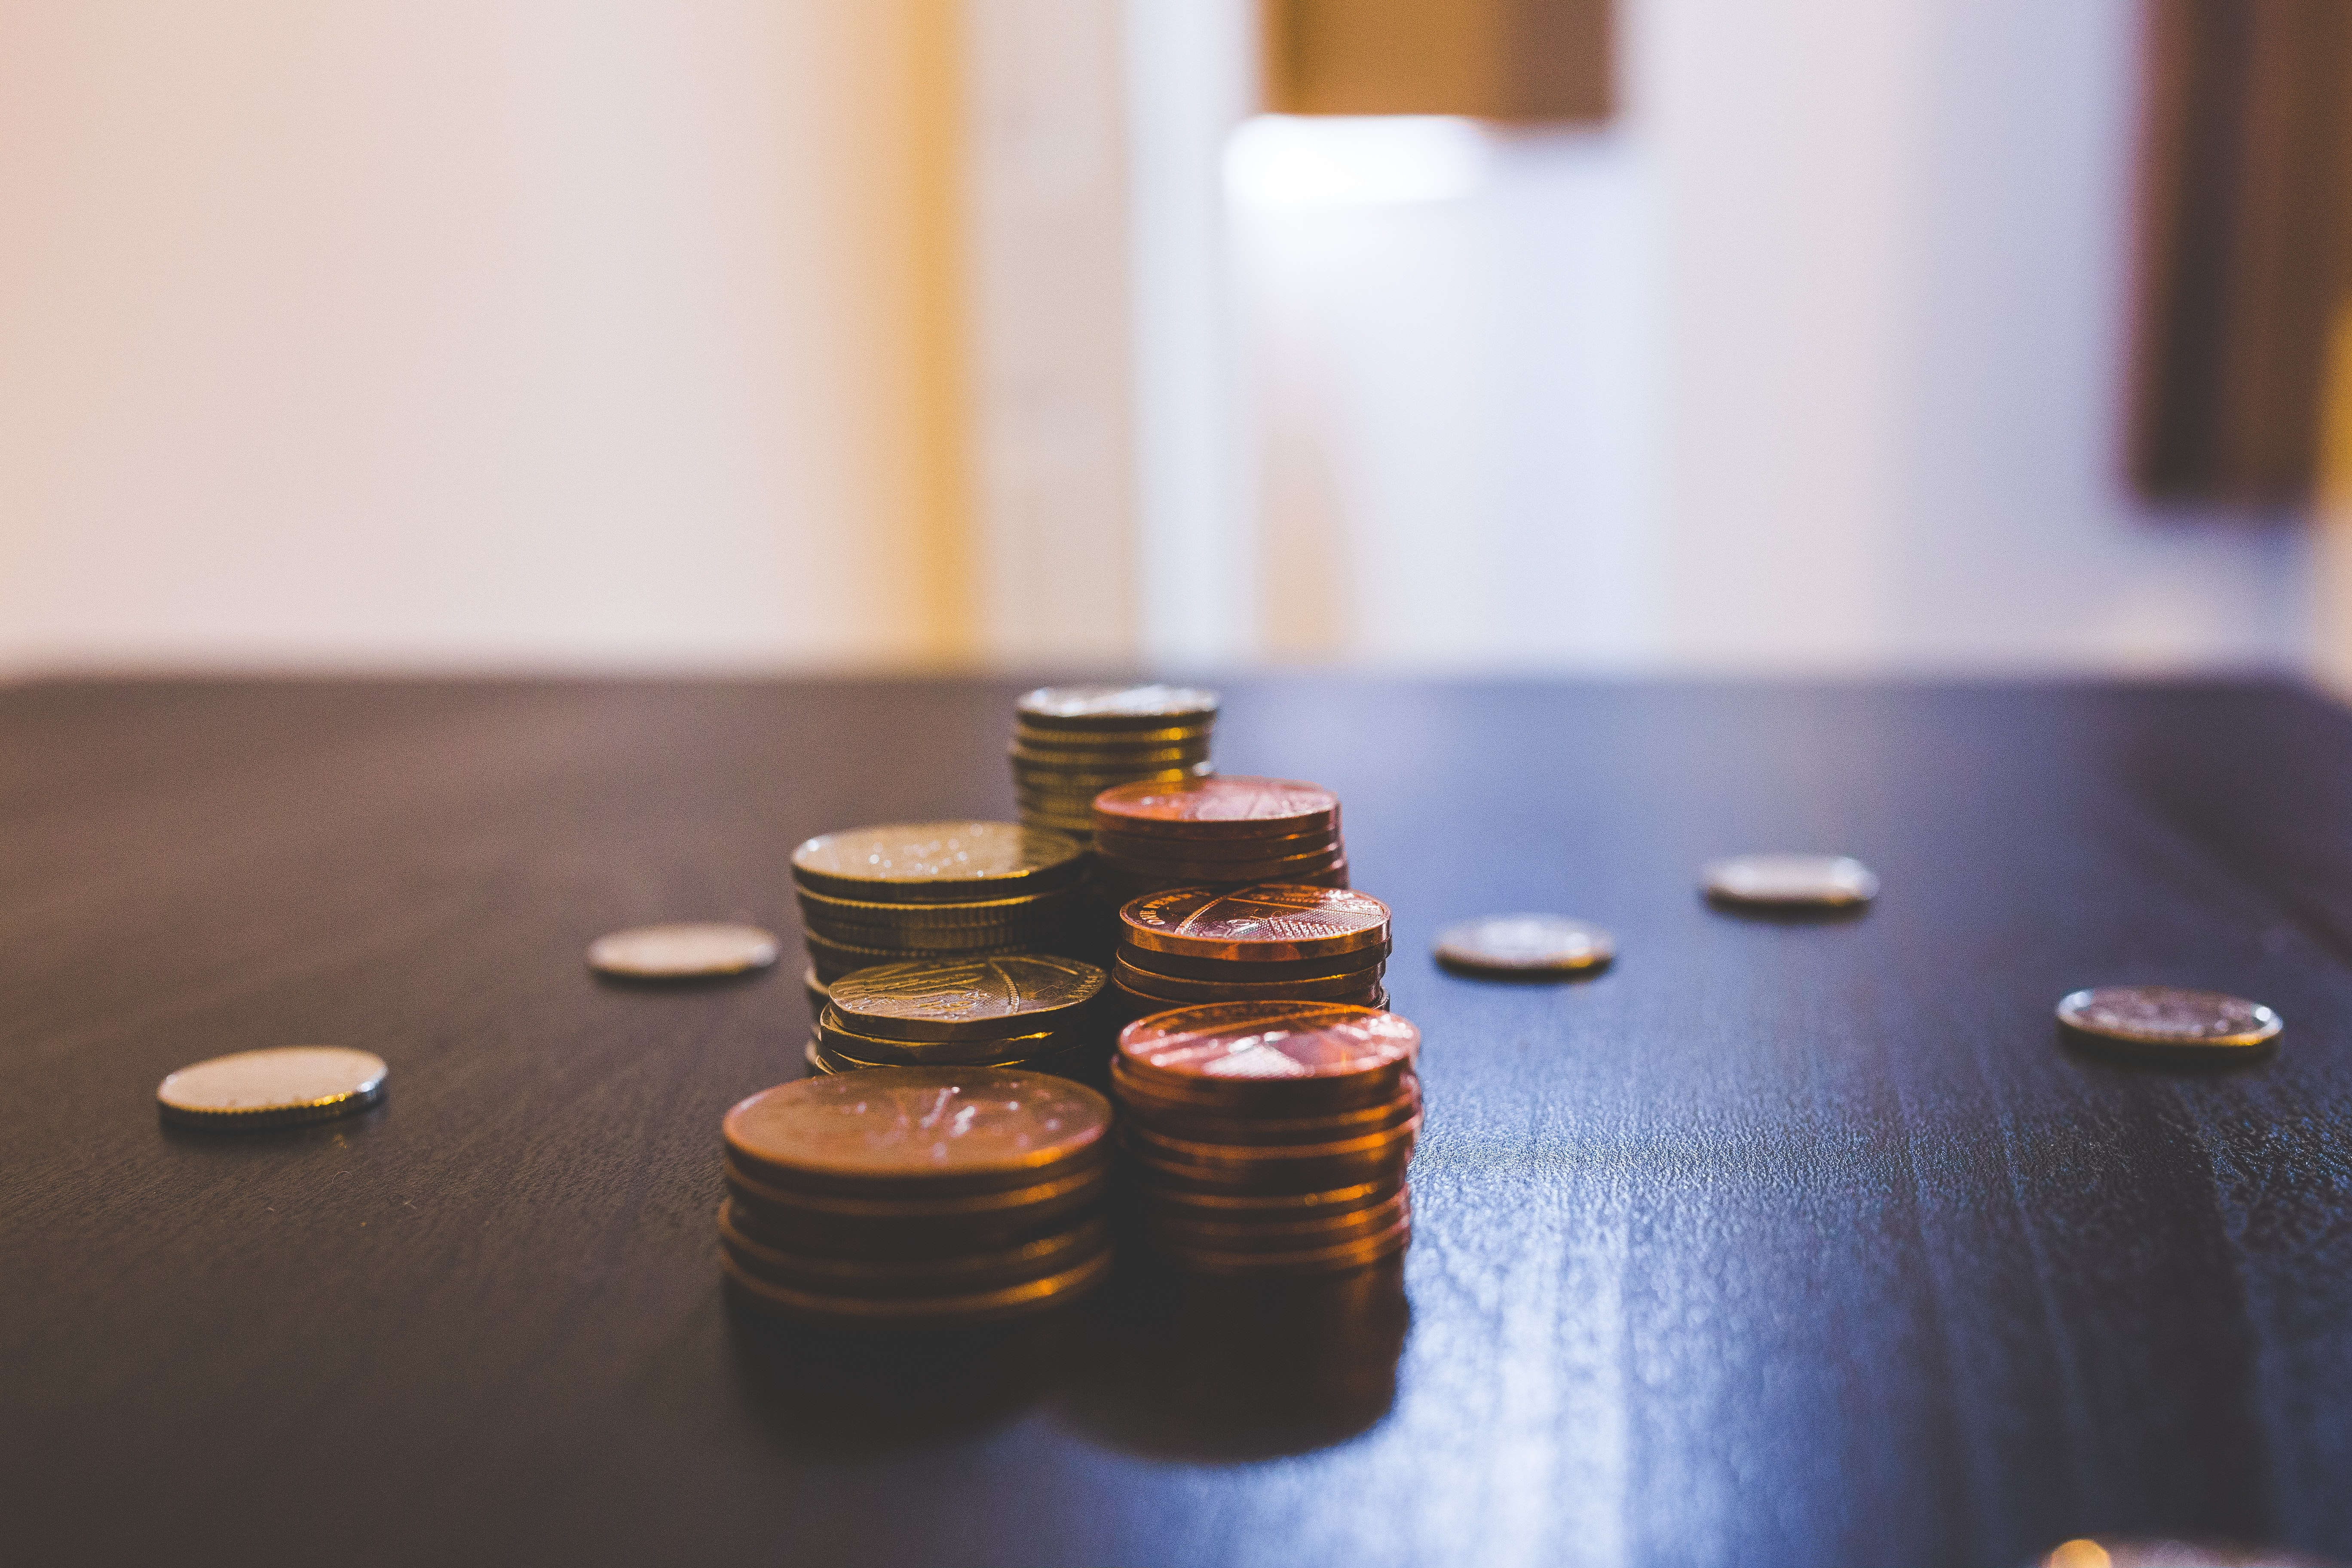 Pile of Brown Coins on Brown Wooden Table Top · Free Stock Photo